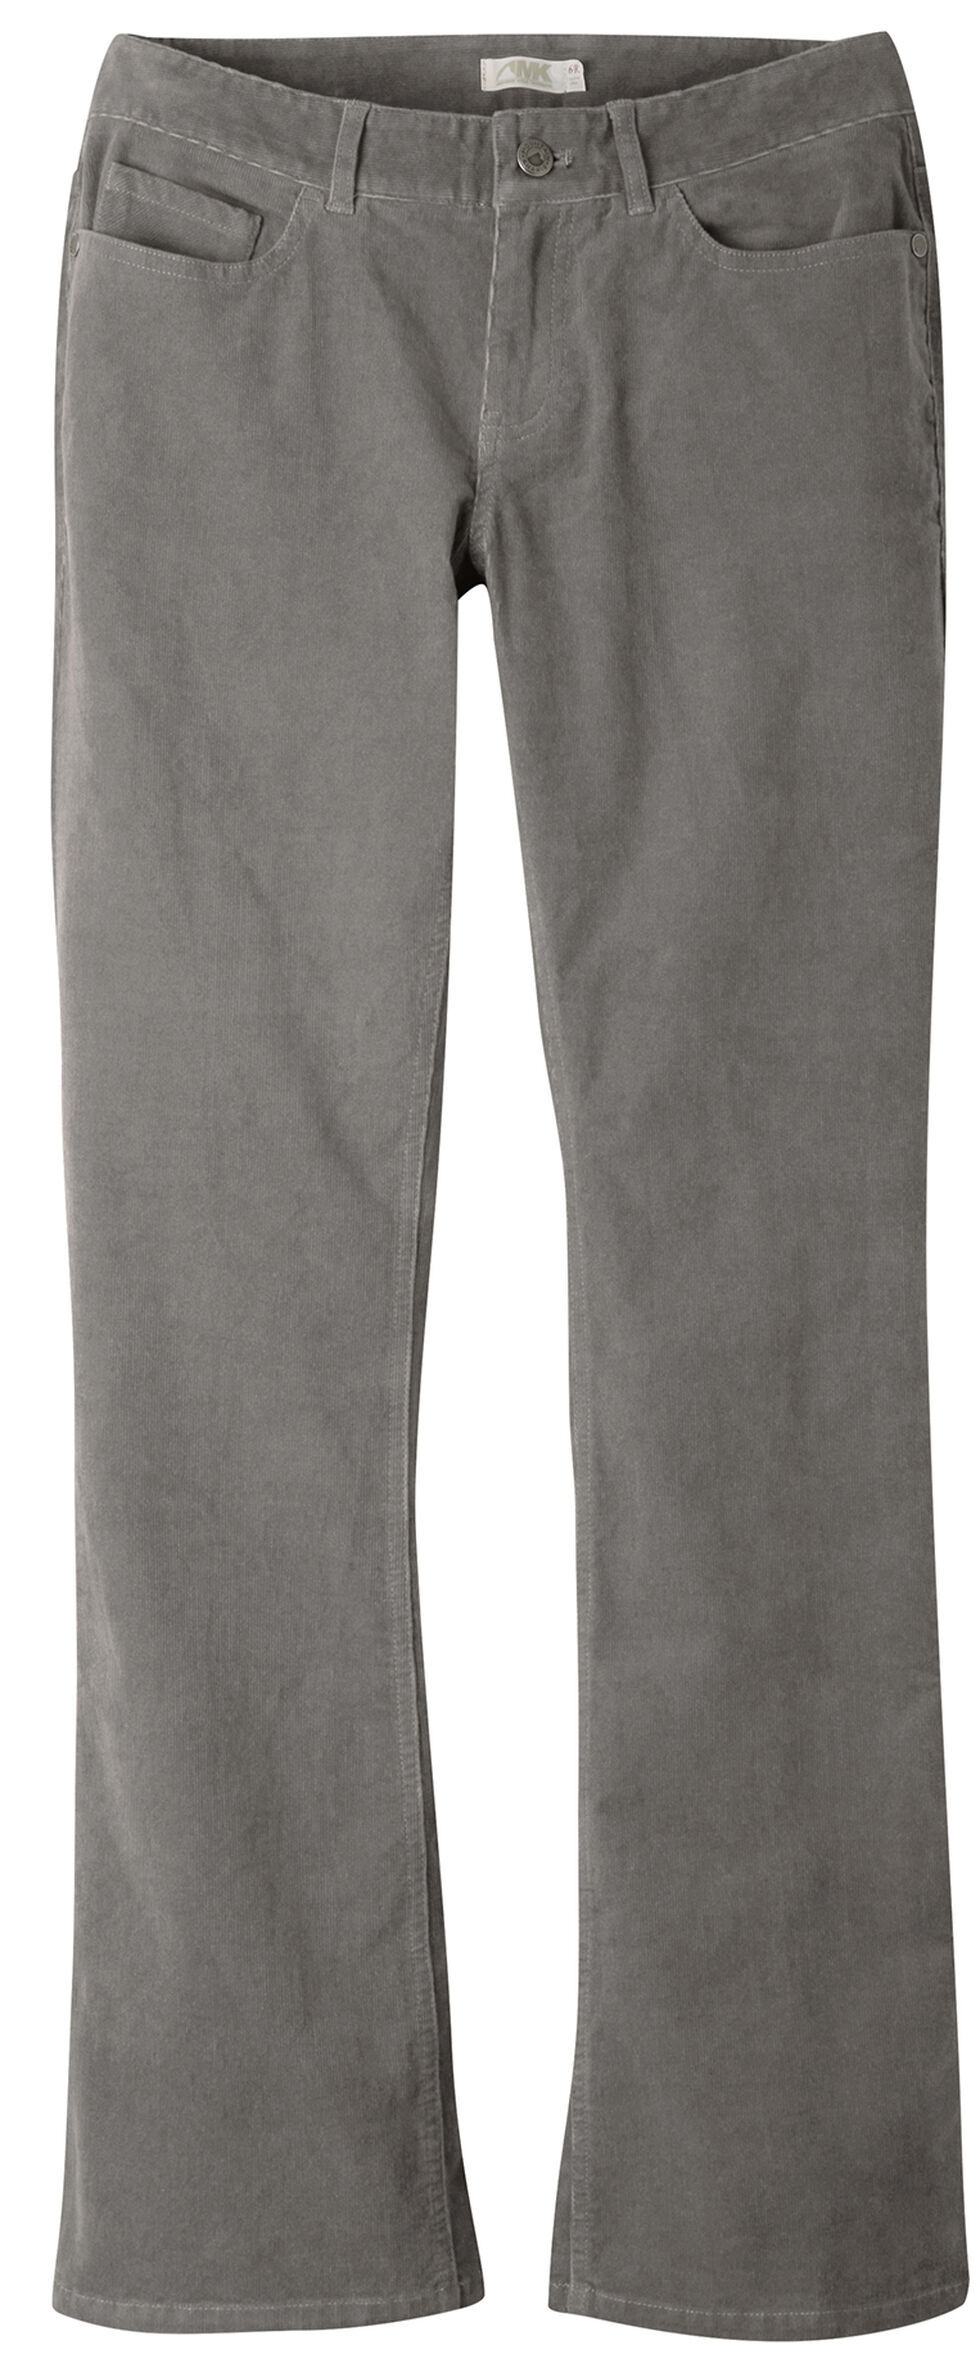 Mountain Khakis Women's Canyon Cord Slim Fit Pants - Petite, Dark Grey, hi-res